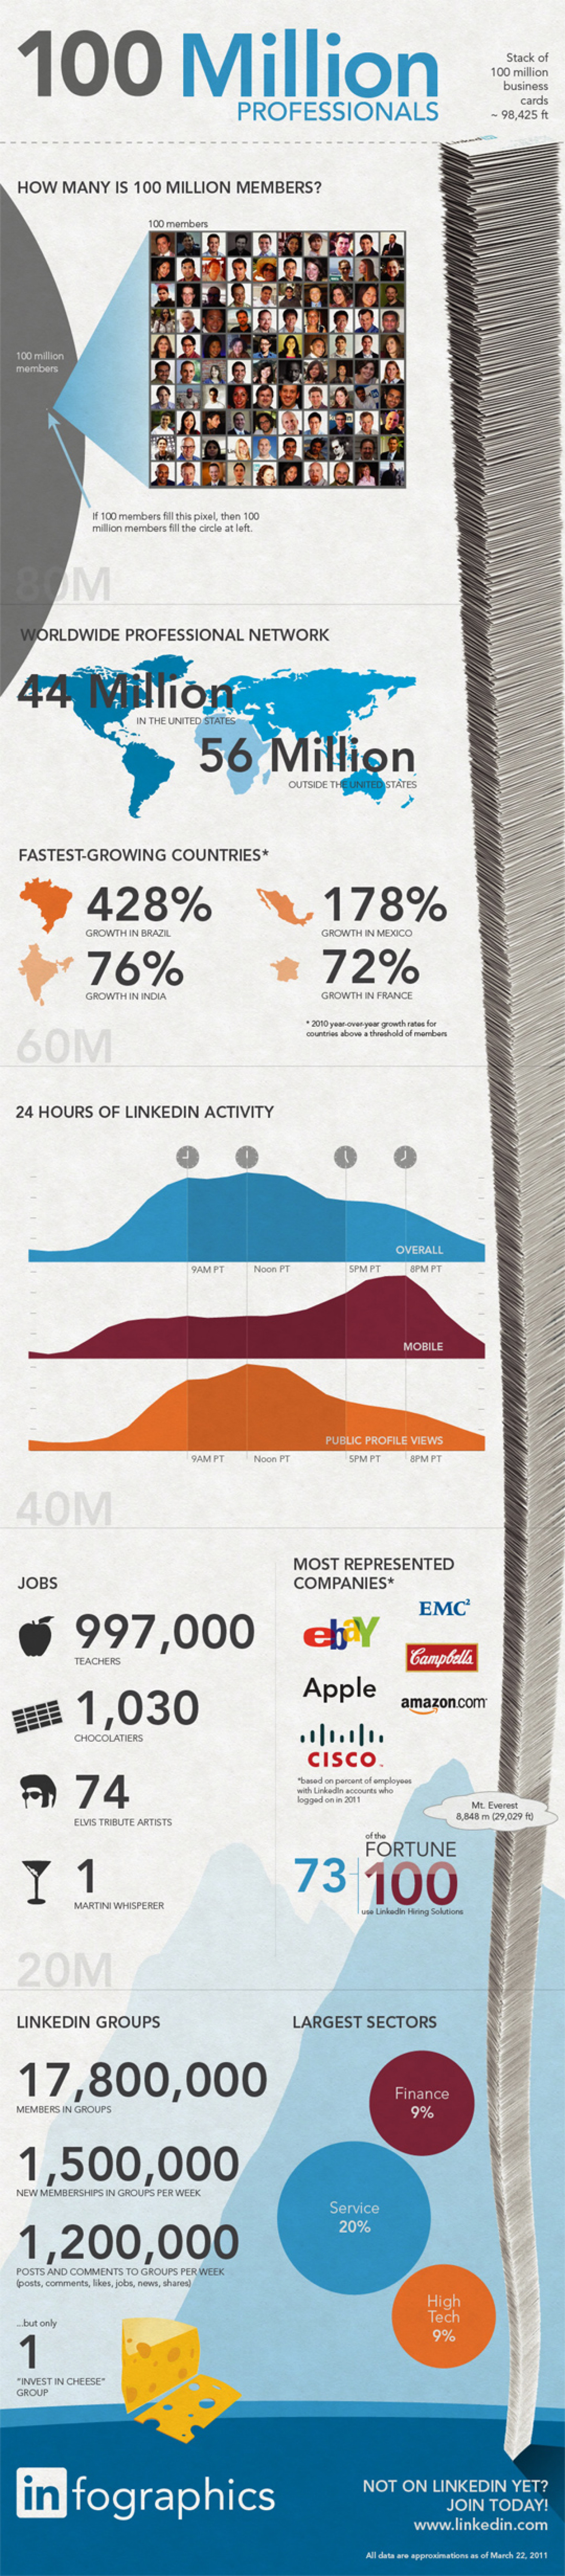 LinkedIn - The Largest Professional Network  Infographic